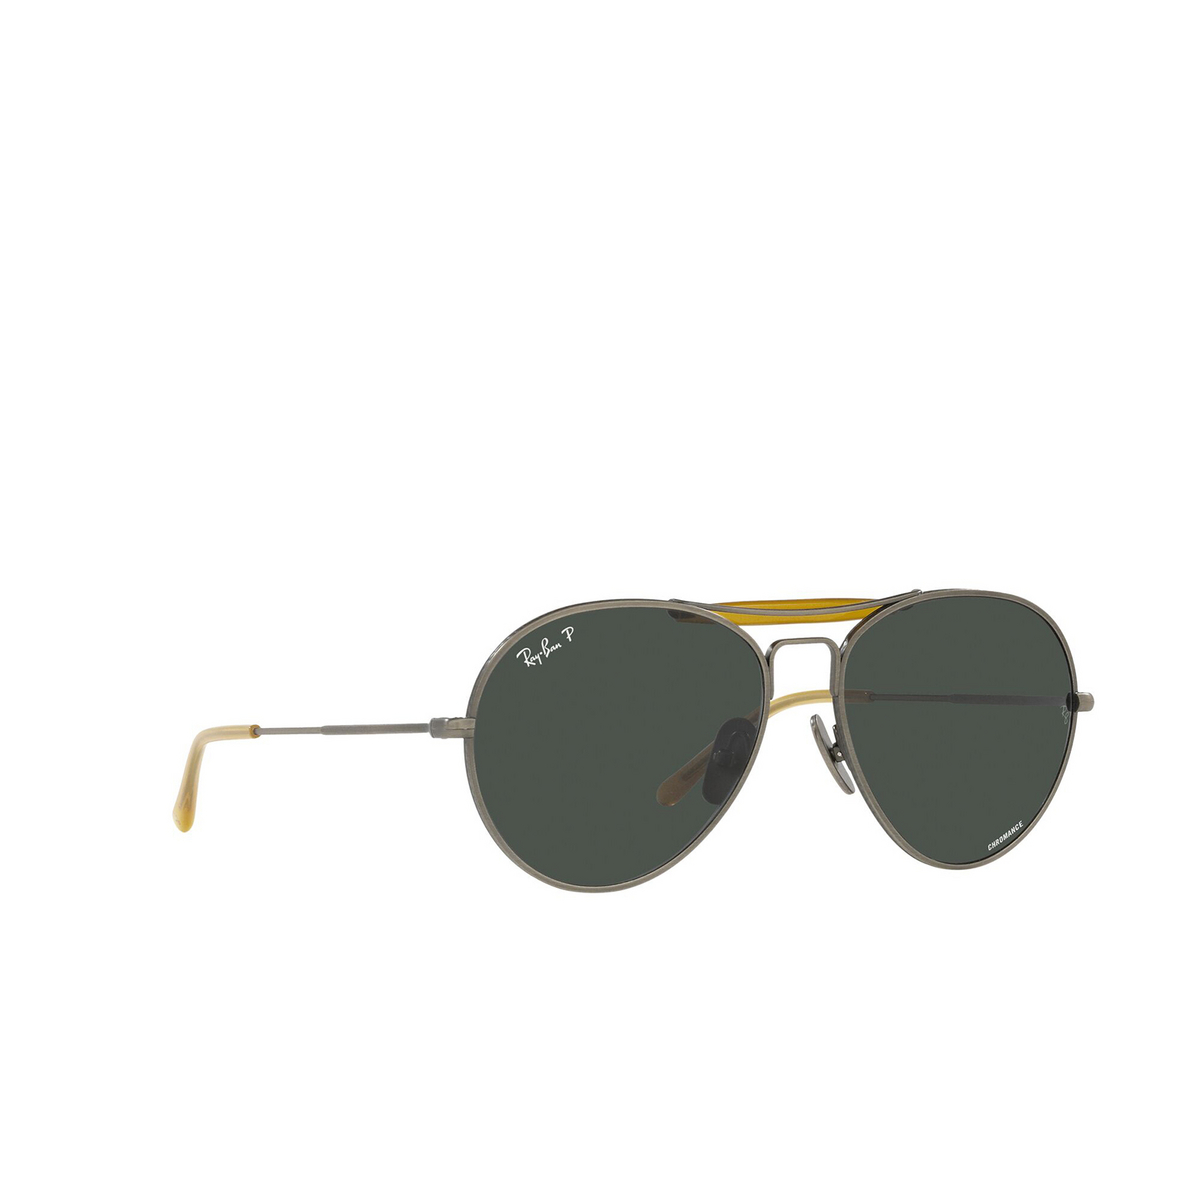 Ray-Ban® Aviator Sunglasses: RB8063 color Demi Gloss Pewter 9208K8 - three-quarters view.